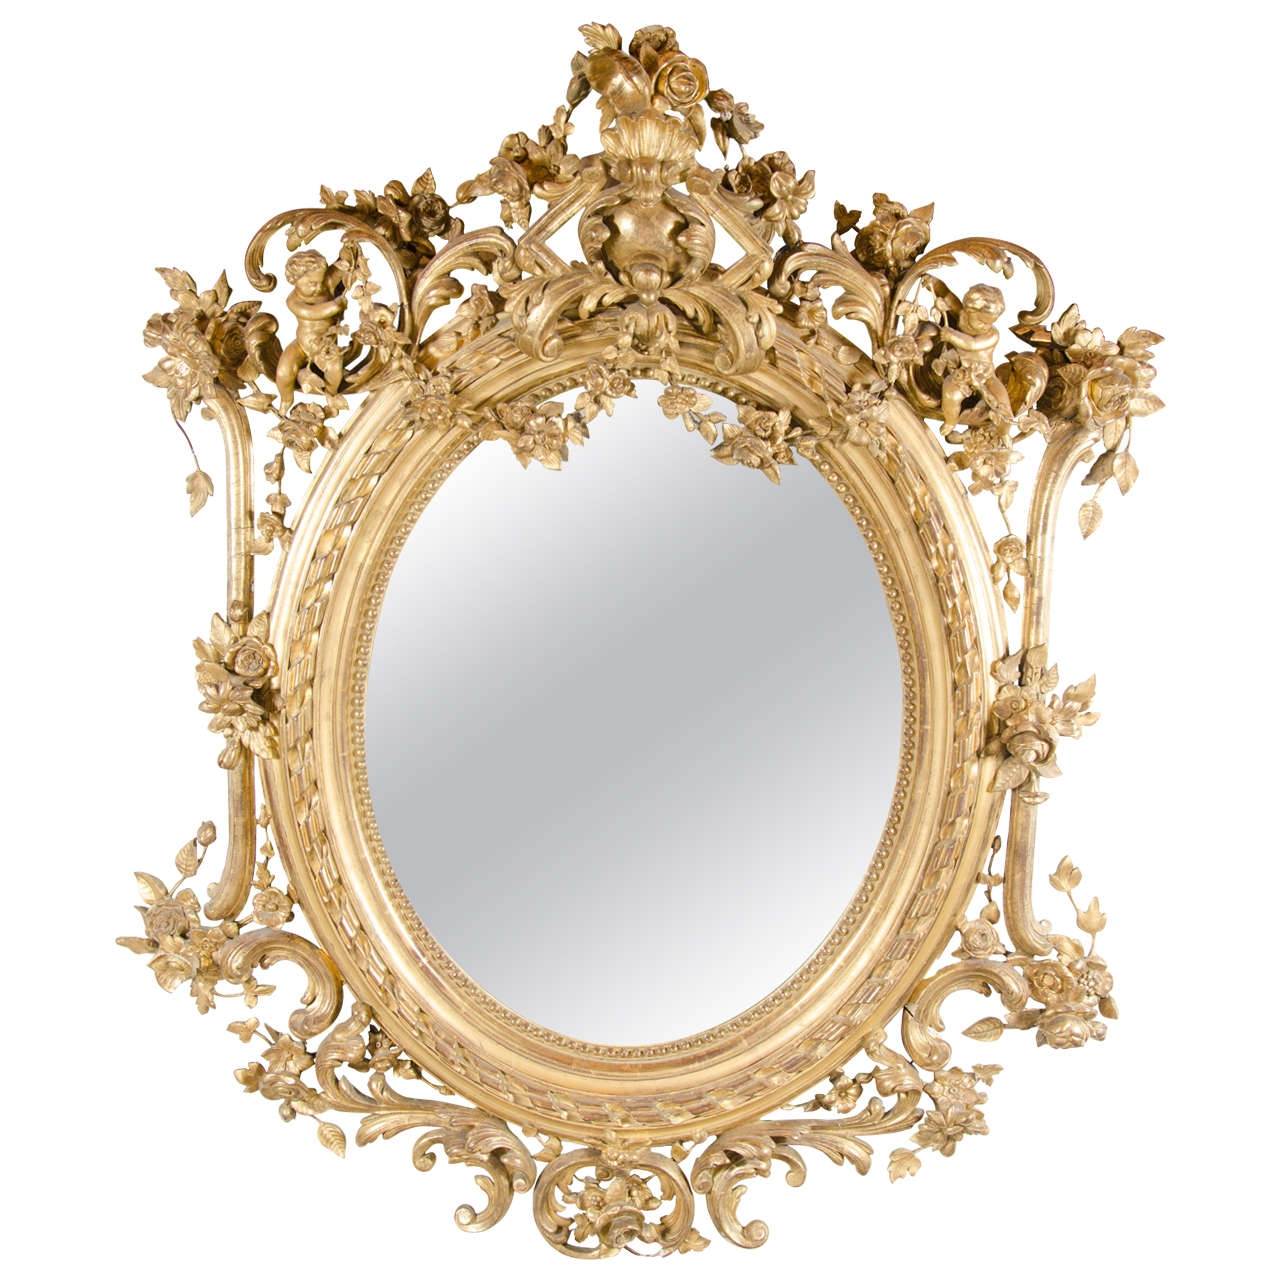 French Rococo Oval Mirror With 24 Karat Gold Gilt And Foliage Throughout Oval French Mirror (View 5 of 15)